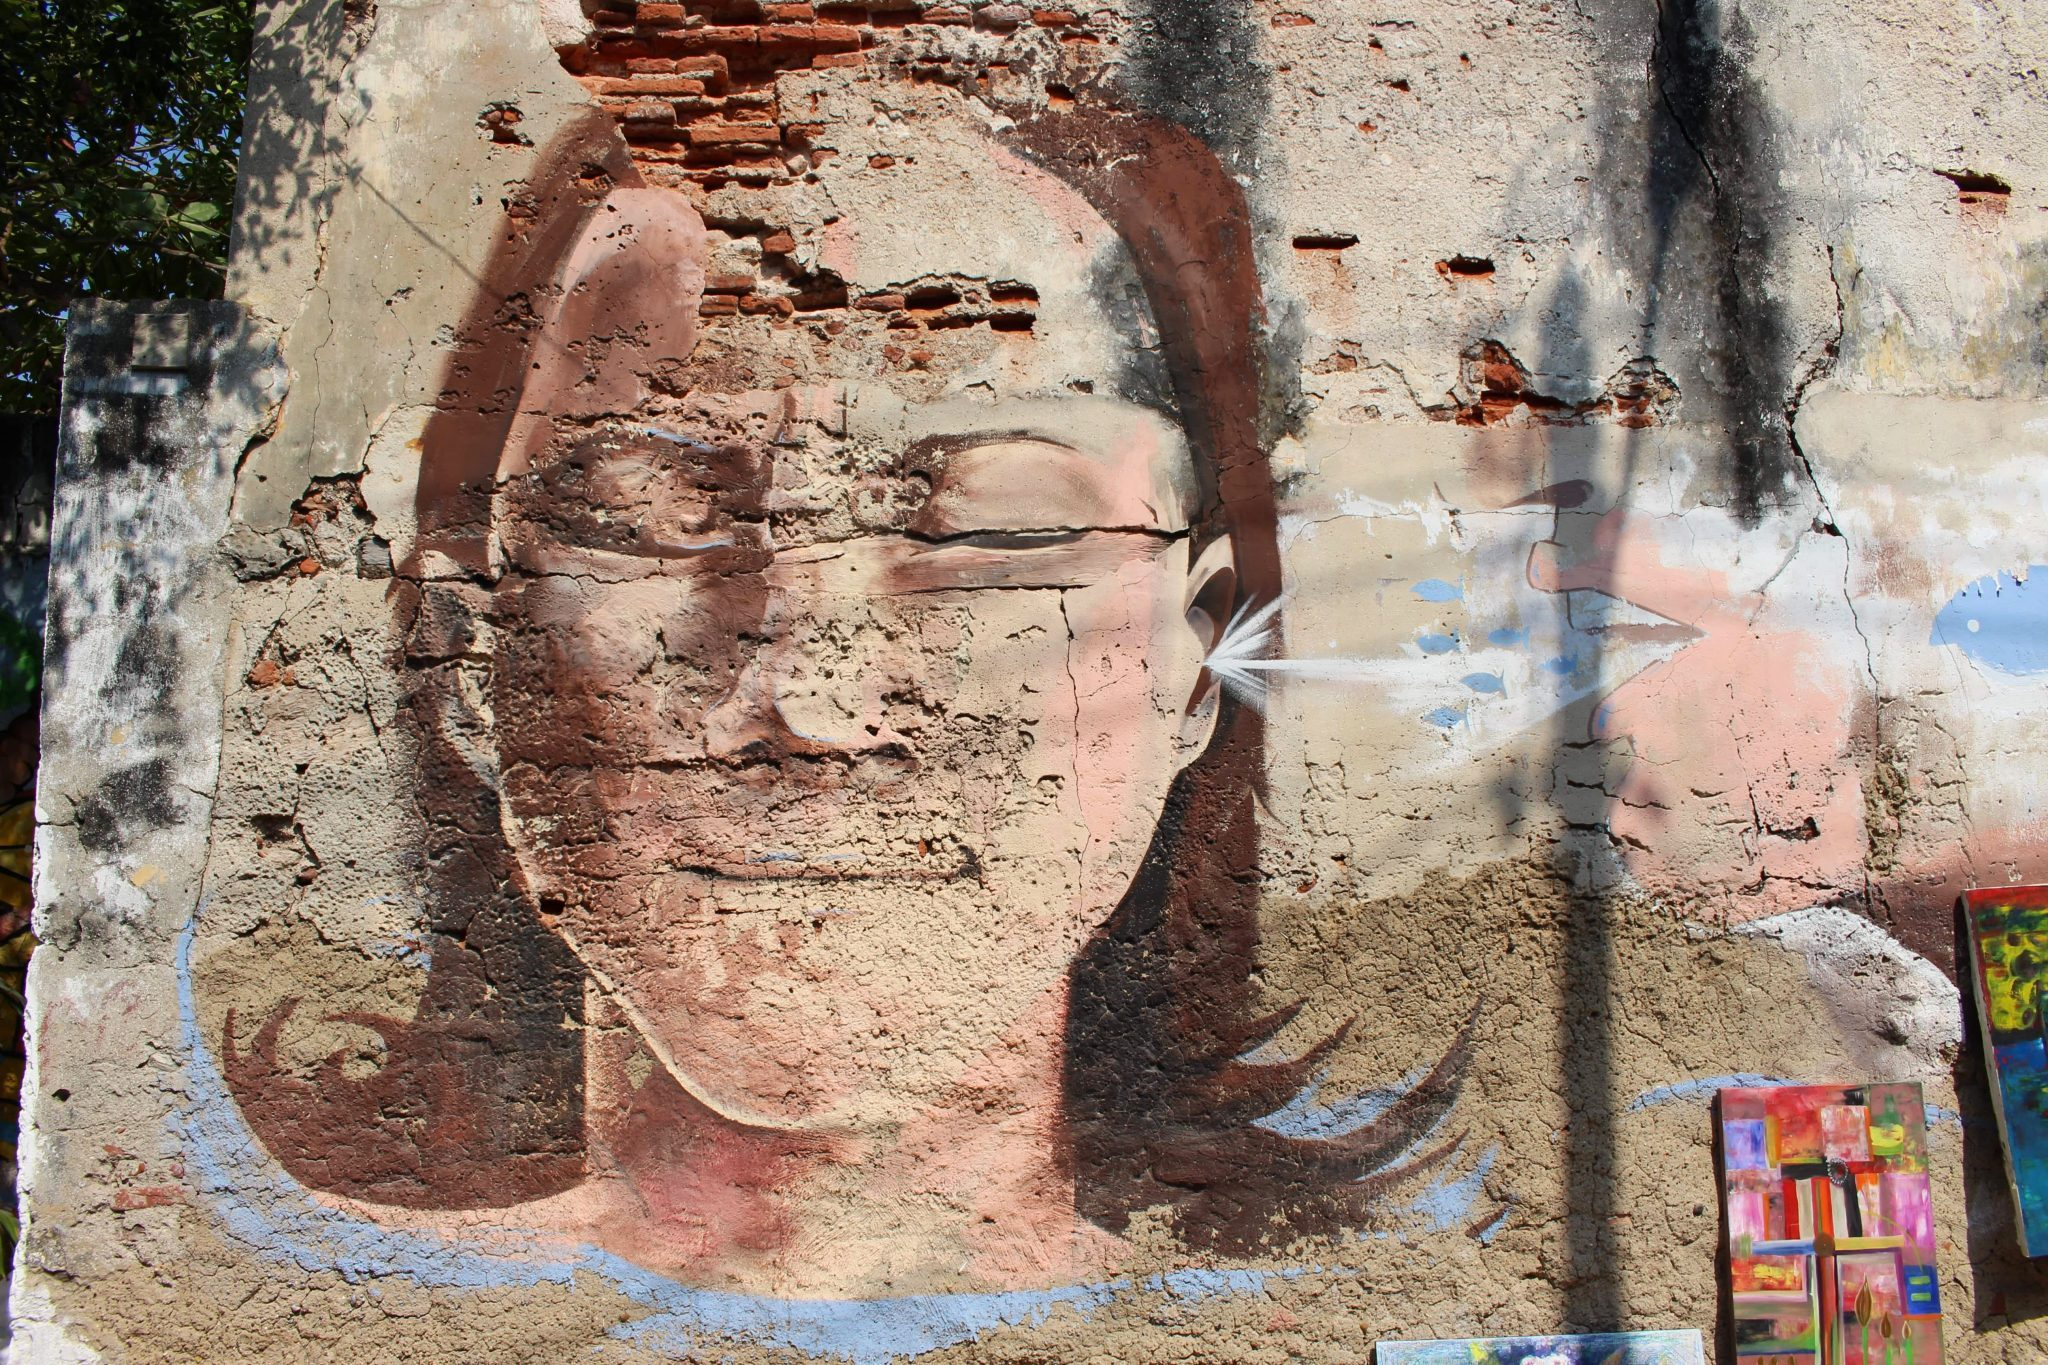 Street art Getsemani head Cartagena